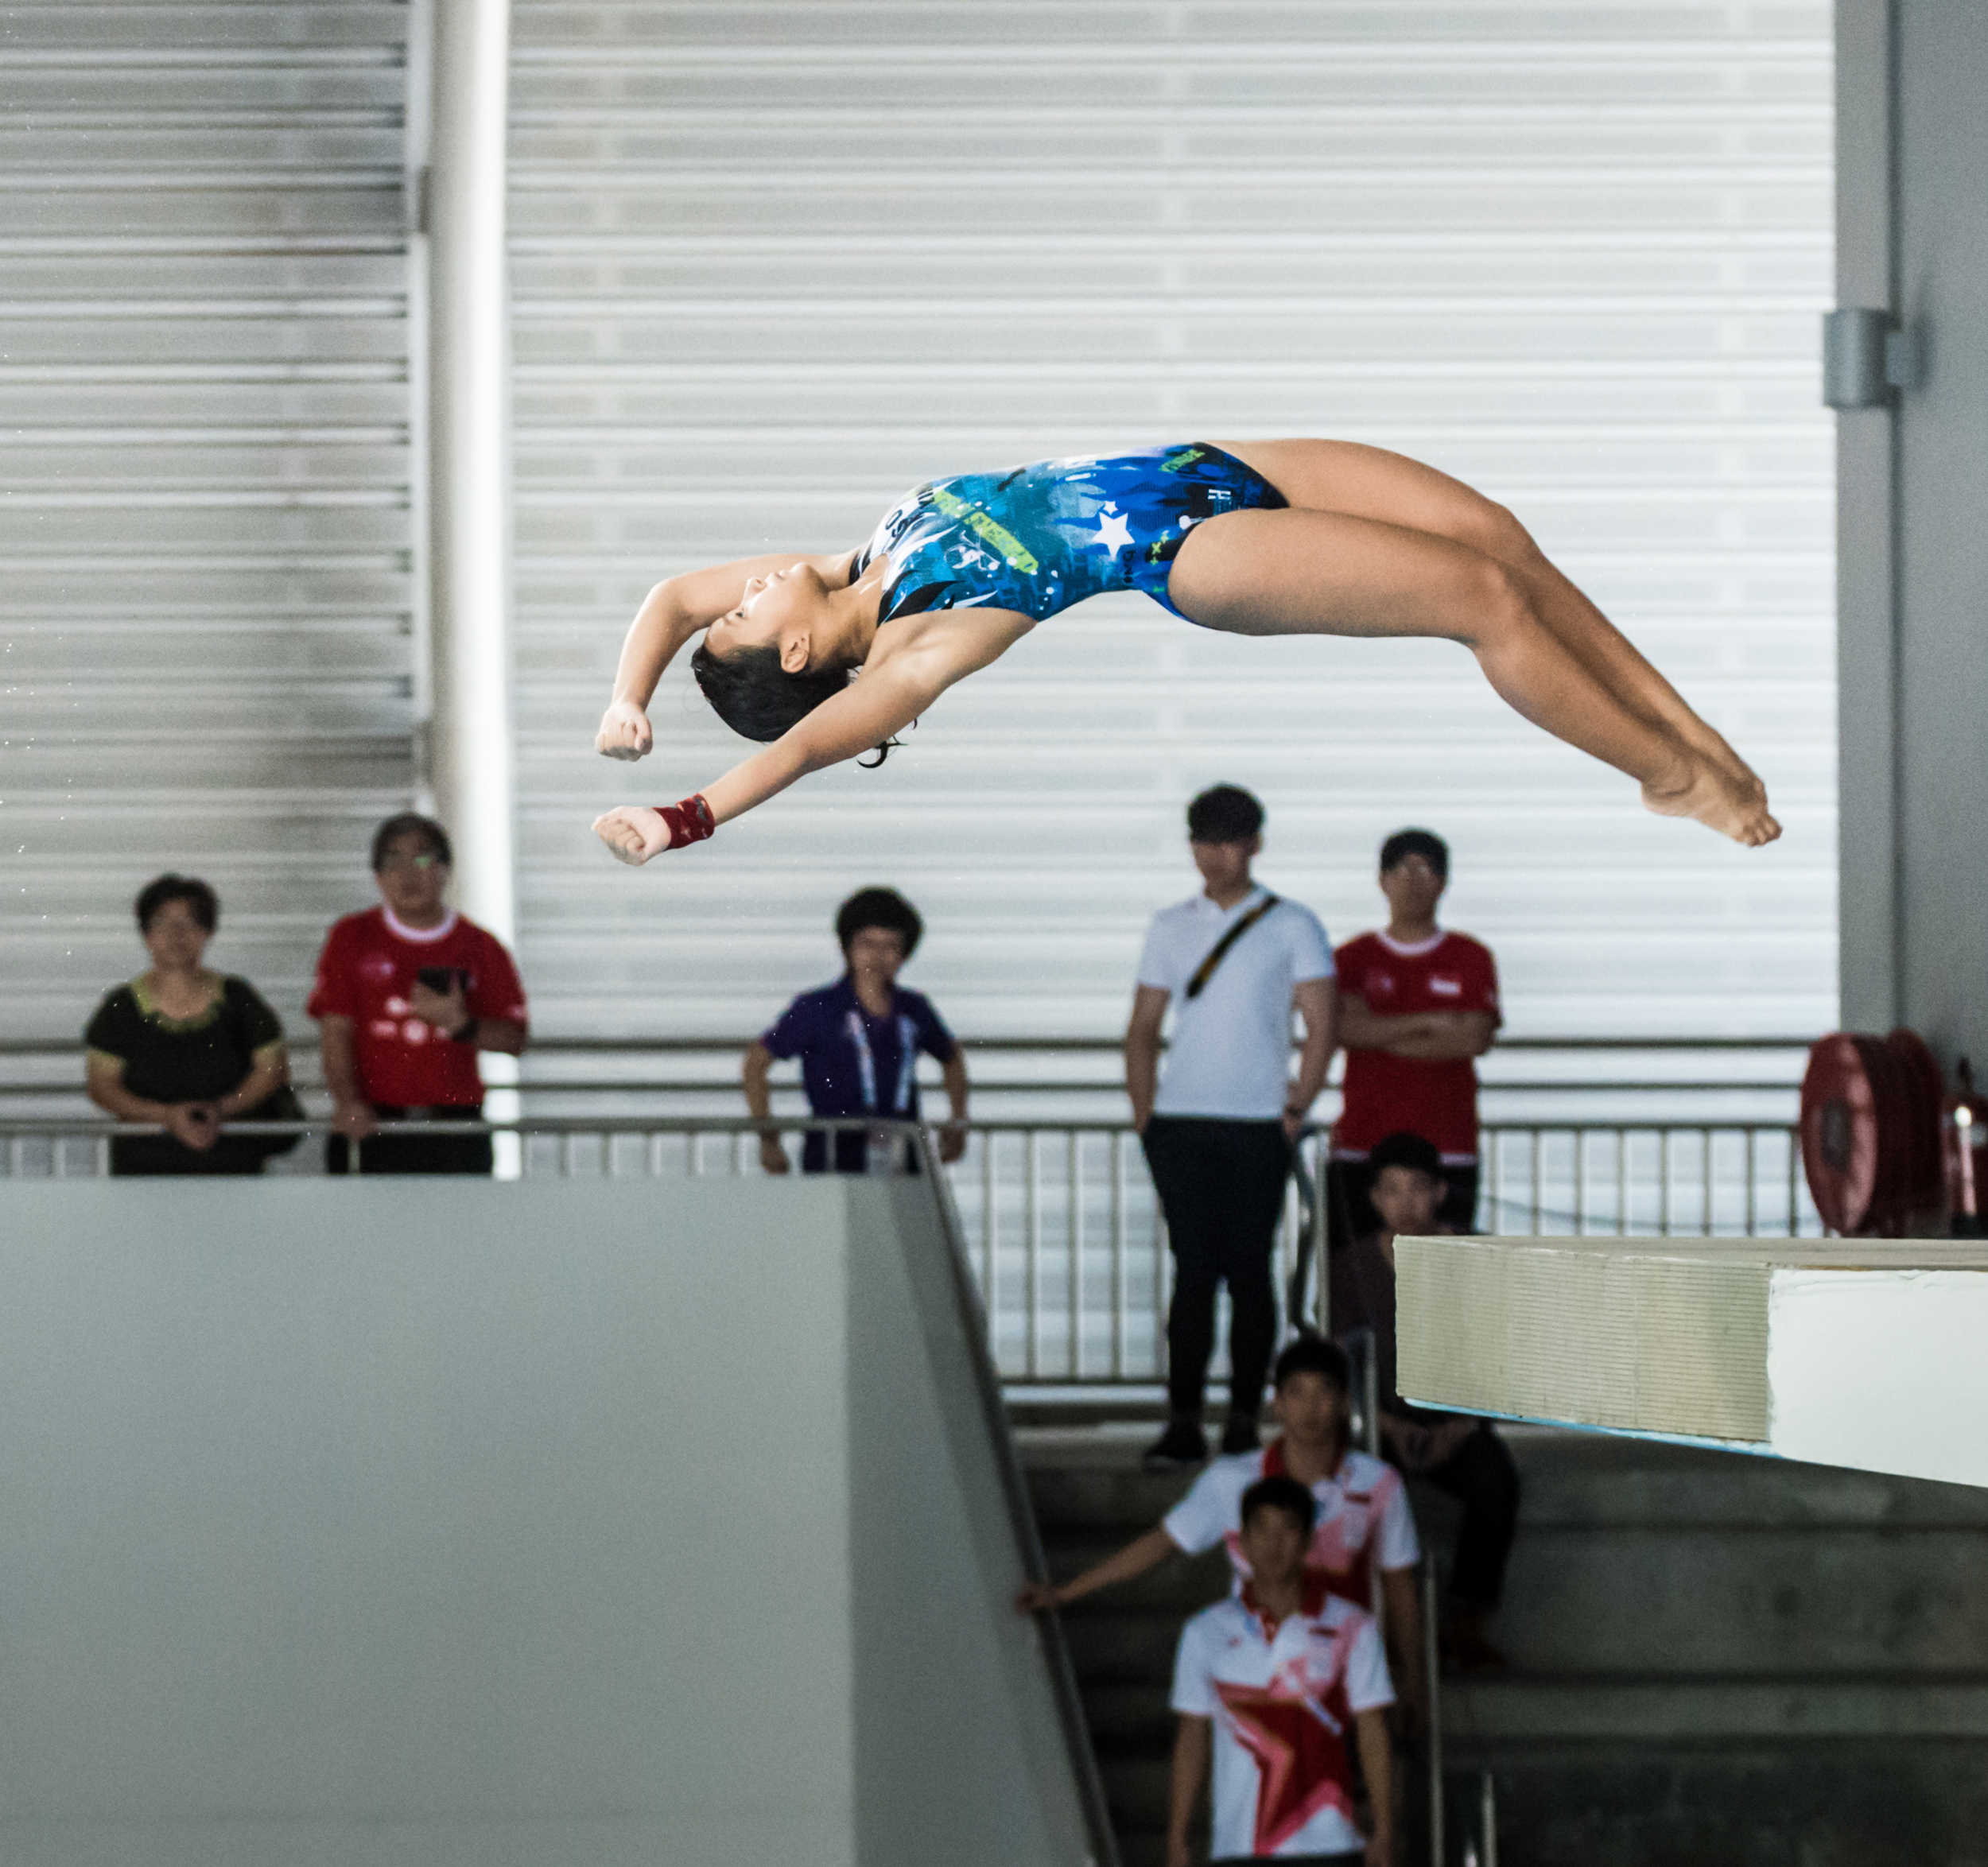 A Malaysian diver jumps off the 10m platform during the SEA Games at the OCBC Aquatic Centre.